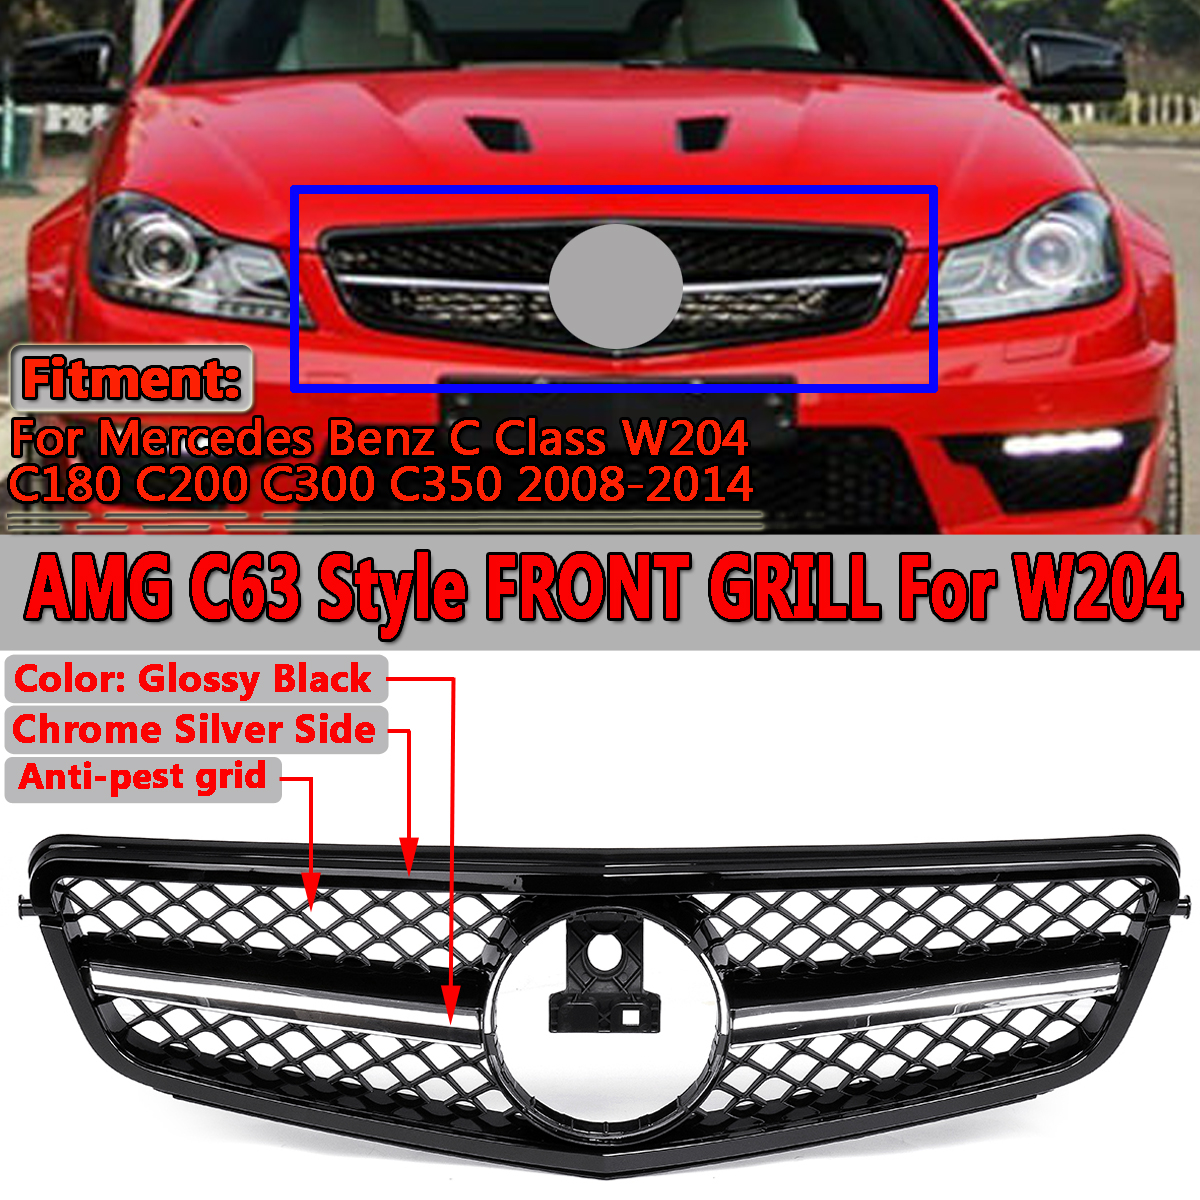 Glossy Black C63 AMG Style Front Upper Grille Grill For Mercedes Benz C Class W204 C180 C200 C300 C350 2008-2014